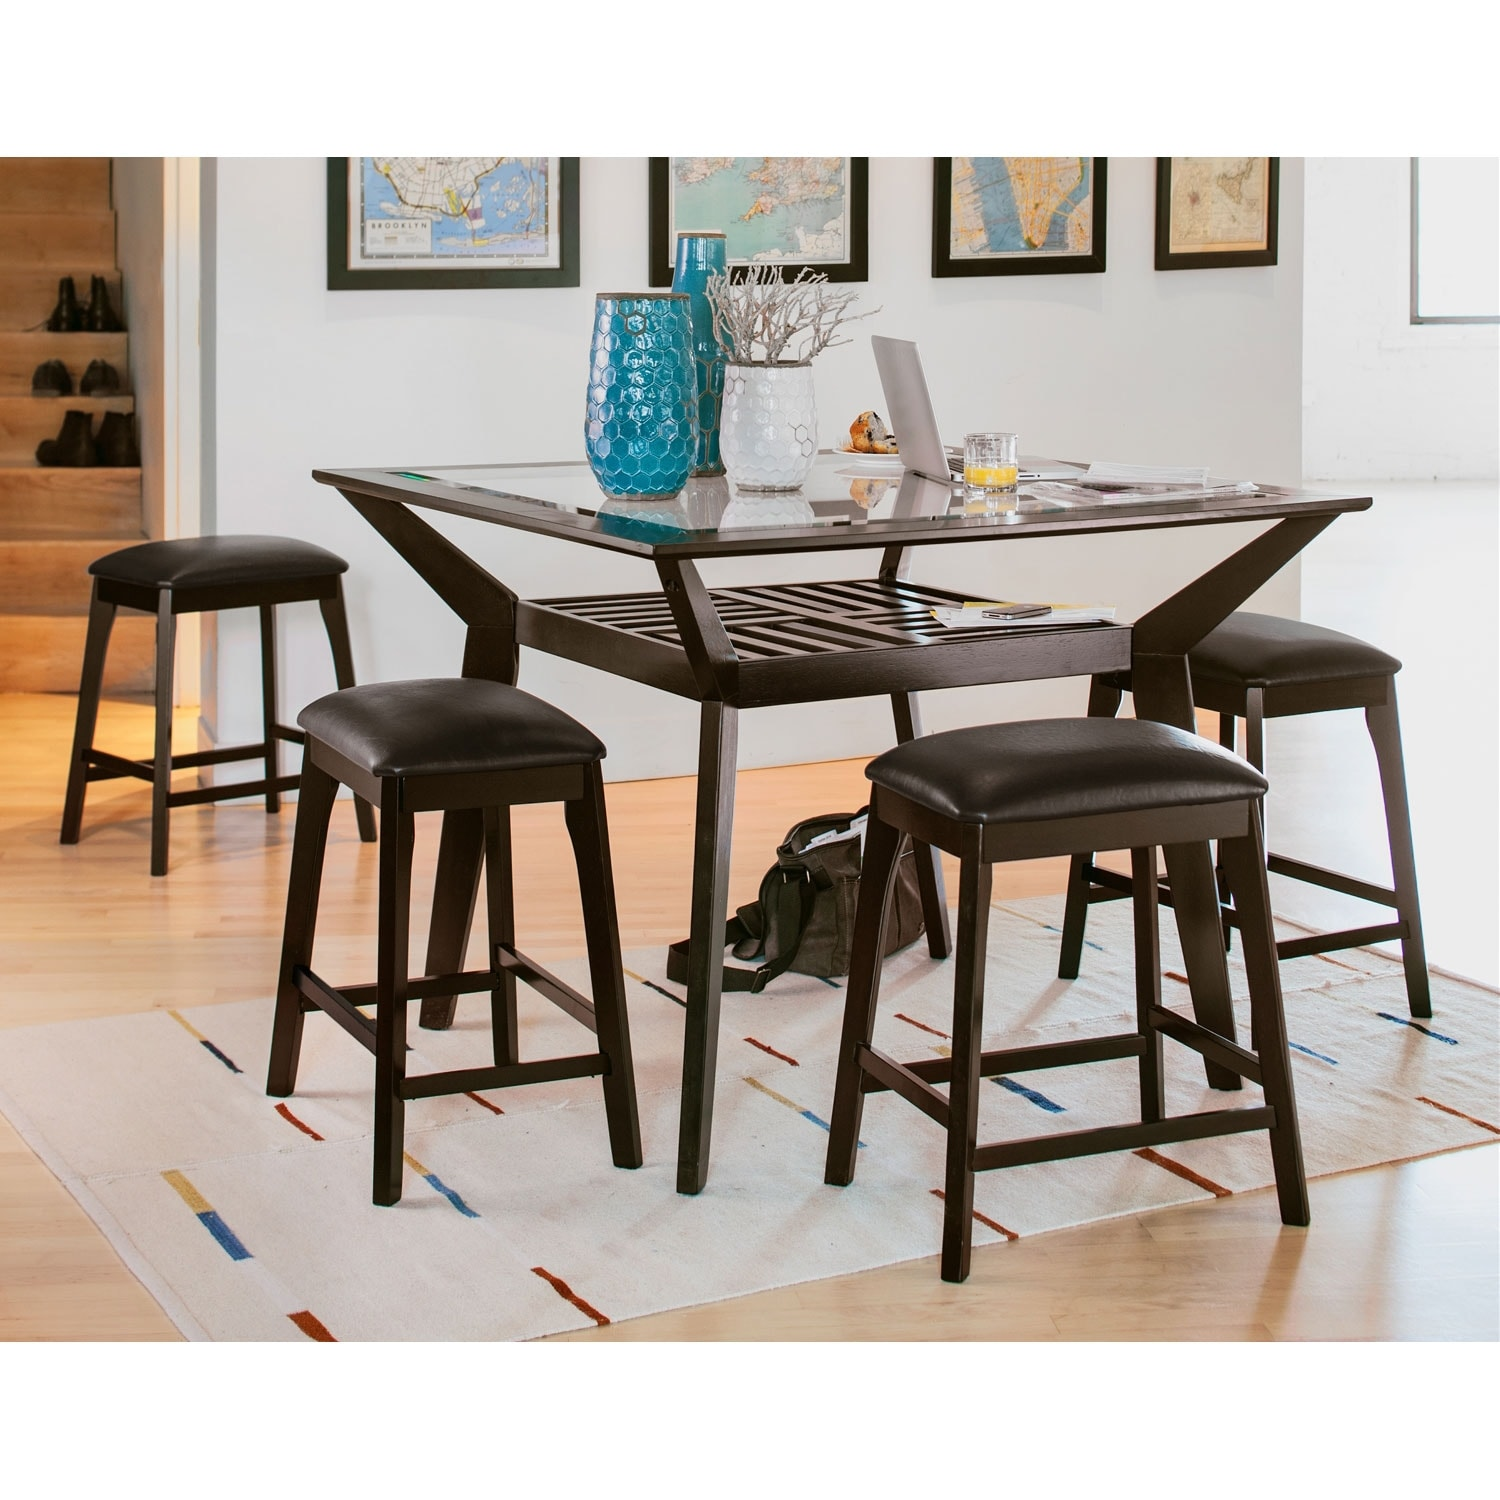 mystic counter-height dining table - merlot | value city furniture